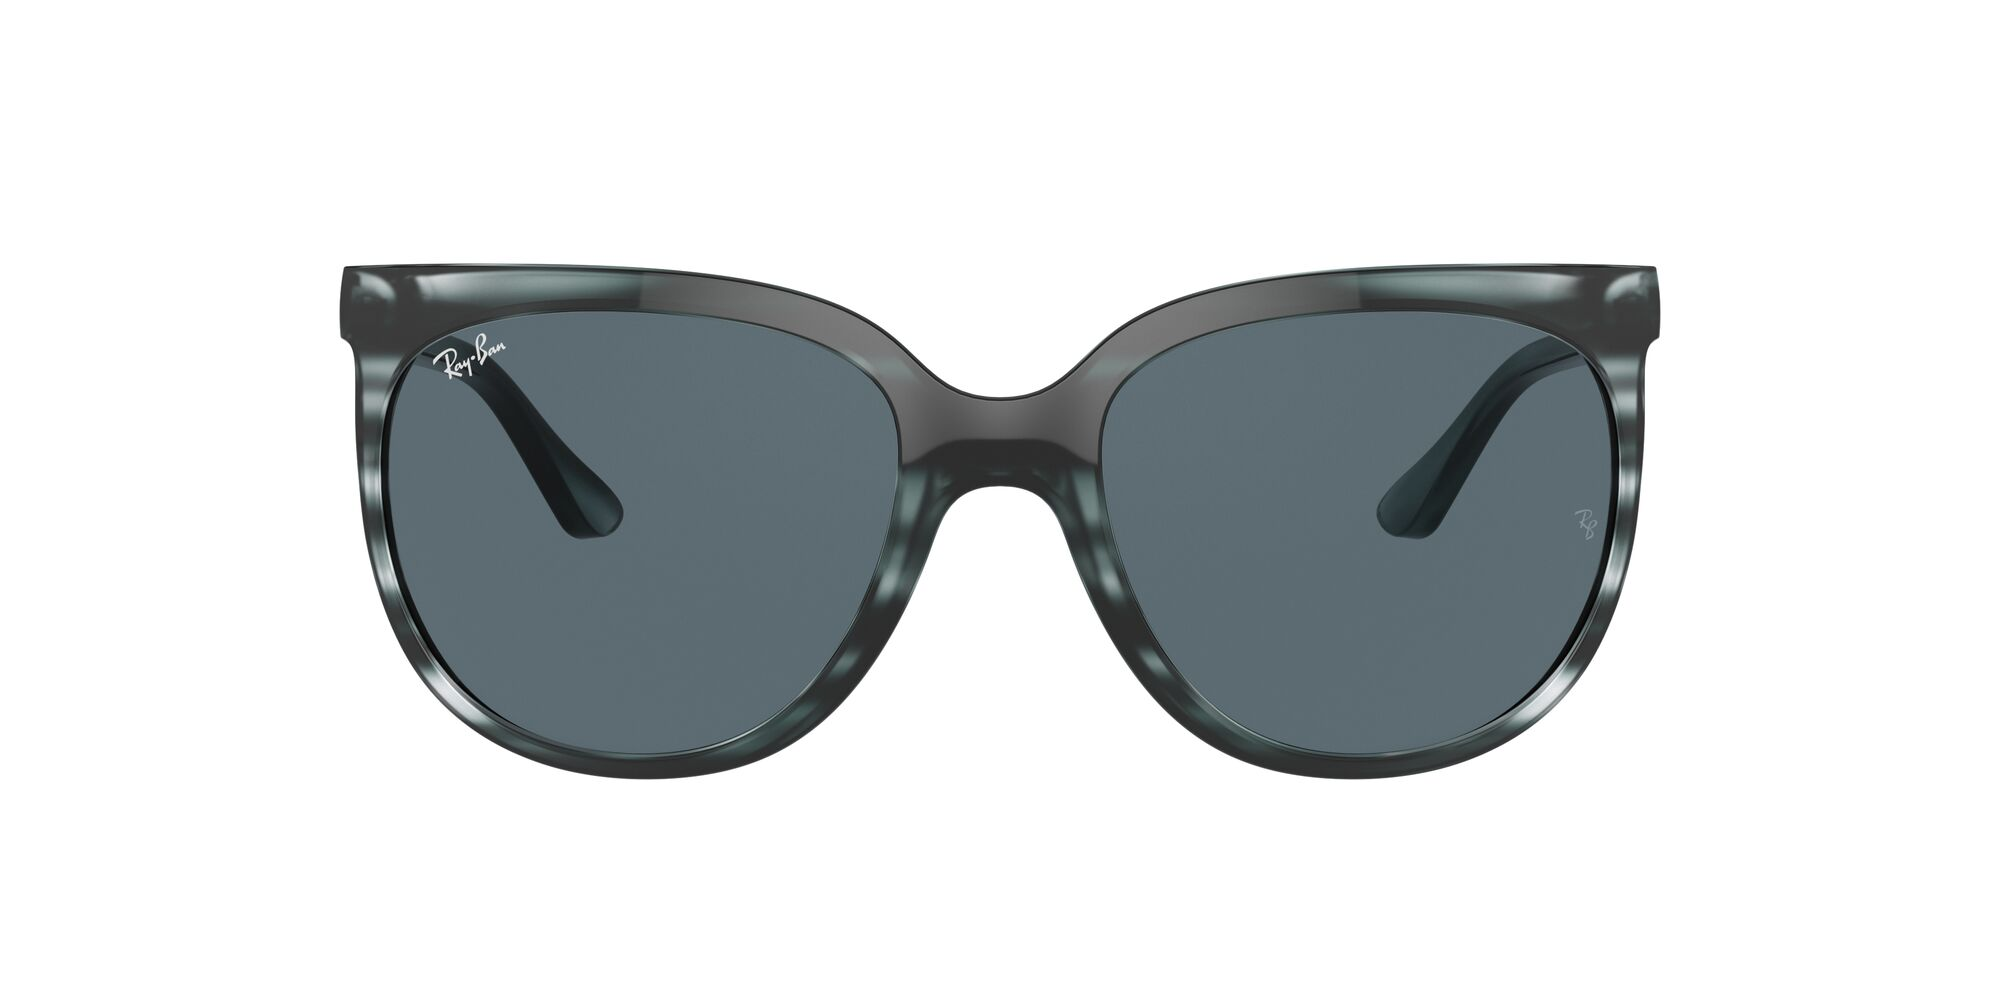 Front Ray-Ban Ray-Ban 0RB4126 6432R5 56/19 Blauw, Bruin/Blauw